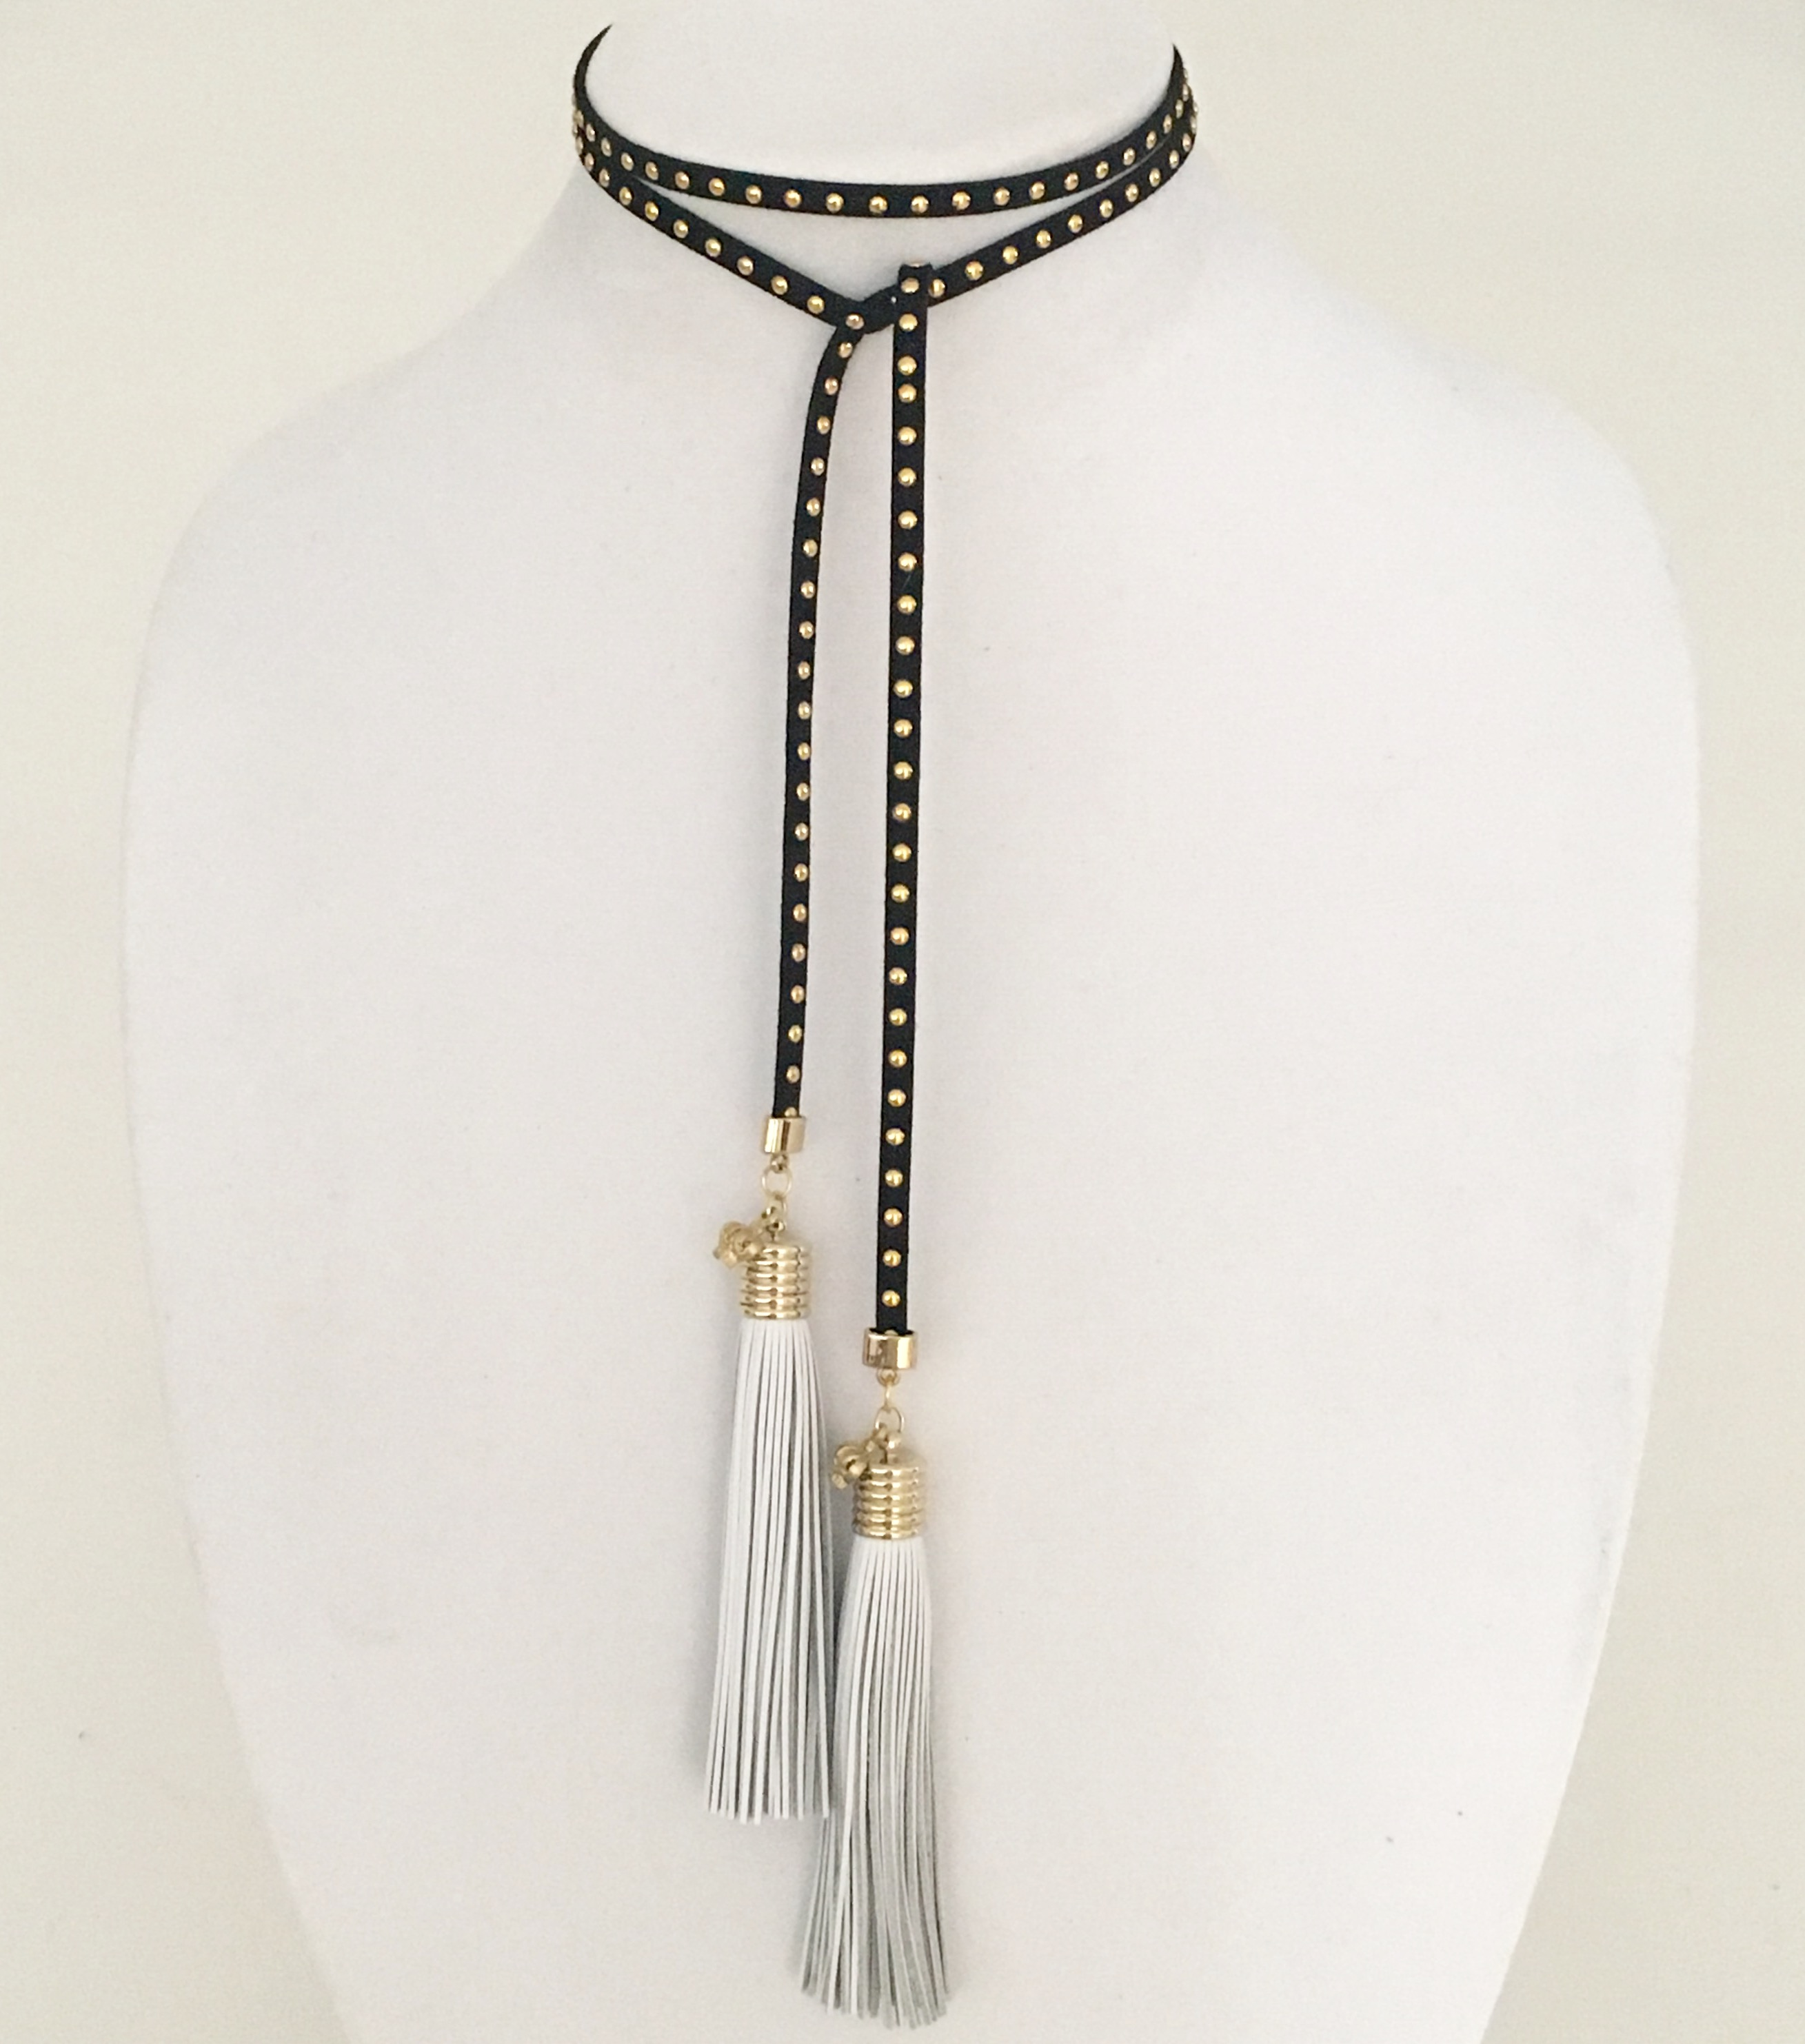 SUEDE WRAP TUXEDO CHOKER IN BLACK WITH GOLD STUDS...